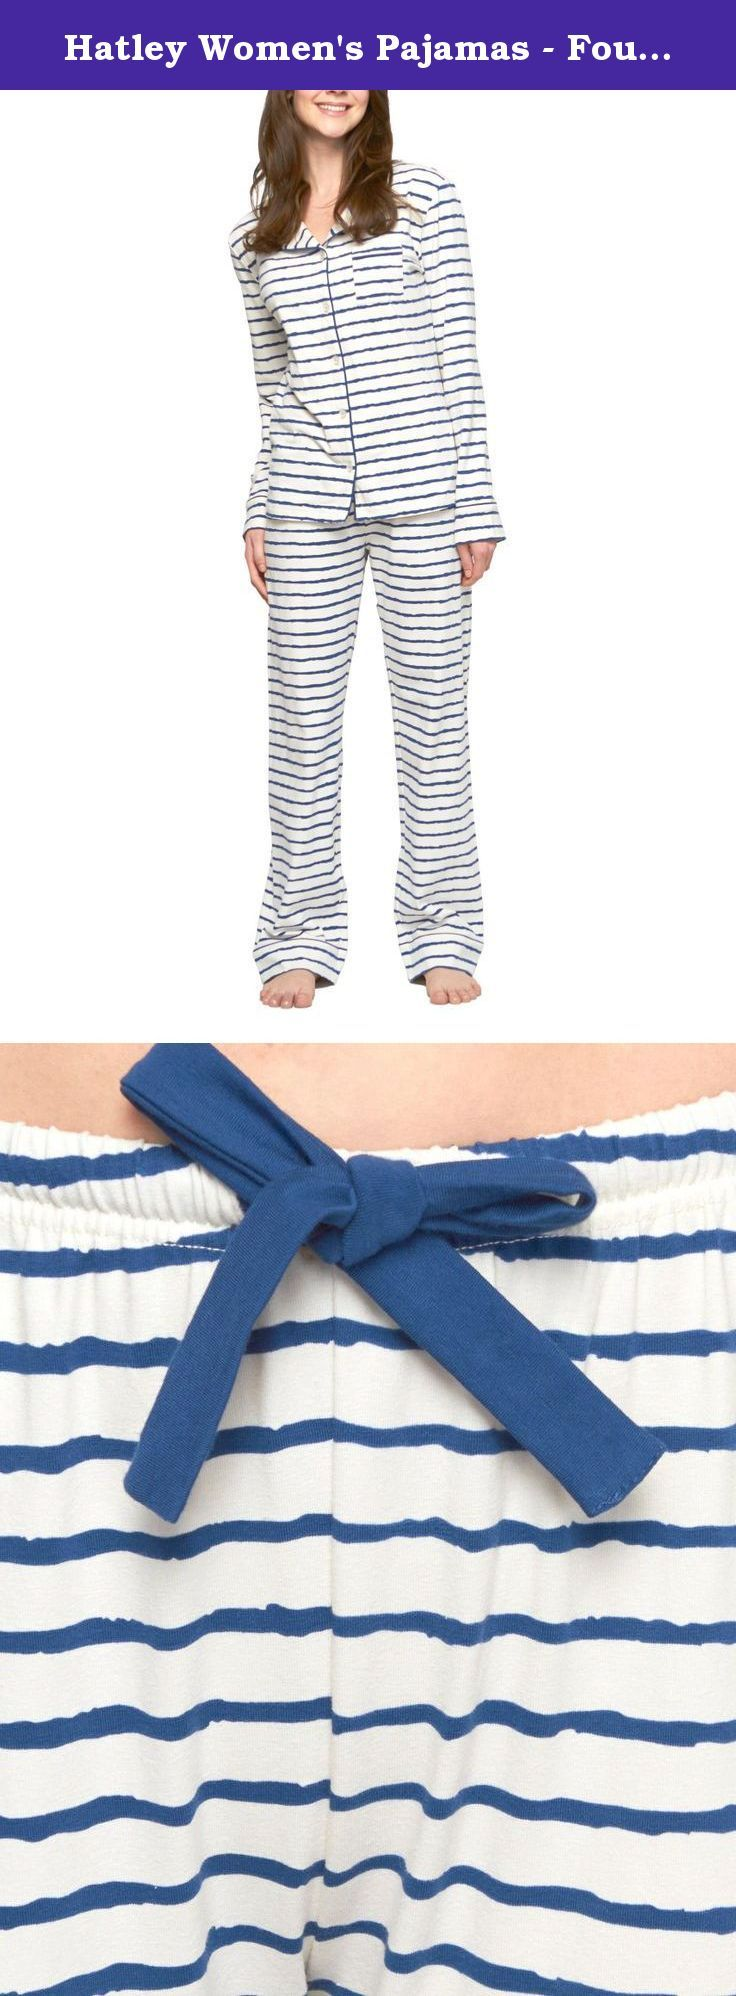 Hatley Women's Pajamas - Four Great Looking Designs Navy Stripes Extra Large. Relax in style in these good looking Hatley pajama sets. Top features a button down closure with contrast piped collar. Twill tape drawstring elastic waist pant.